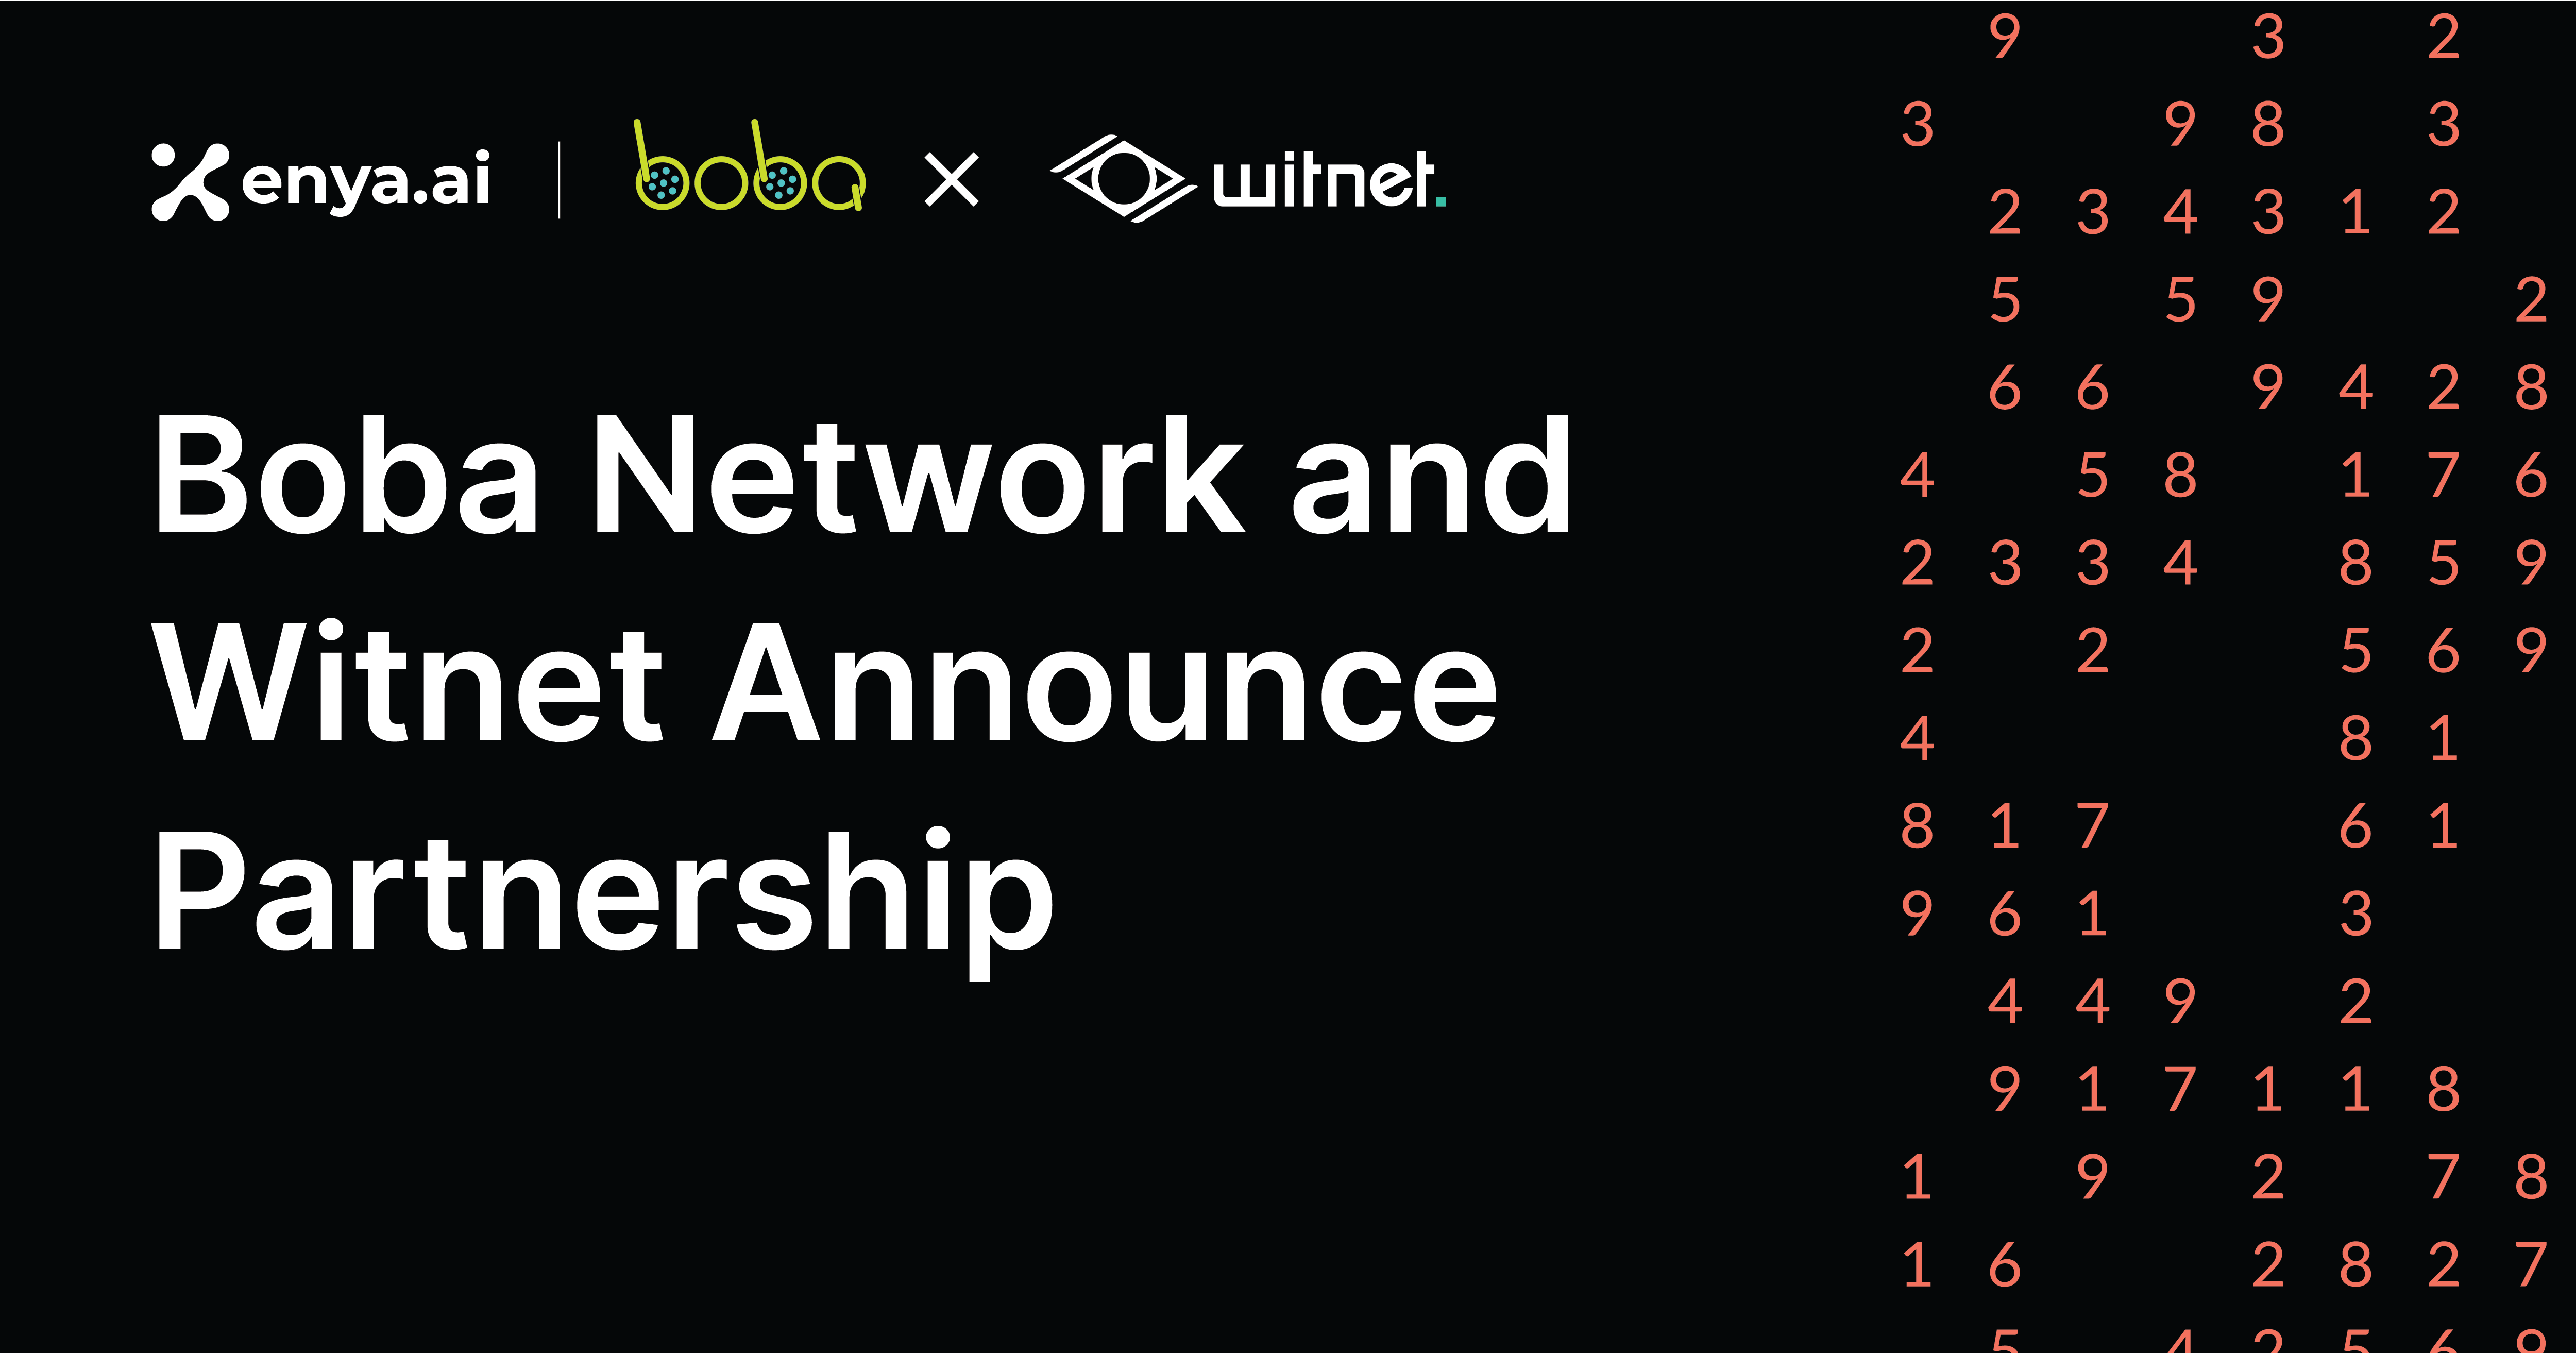 Boba Network Partners with Witnet